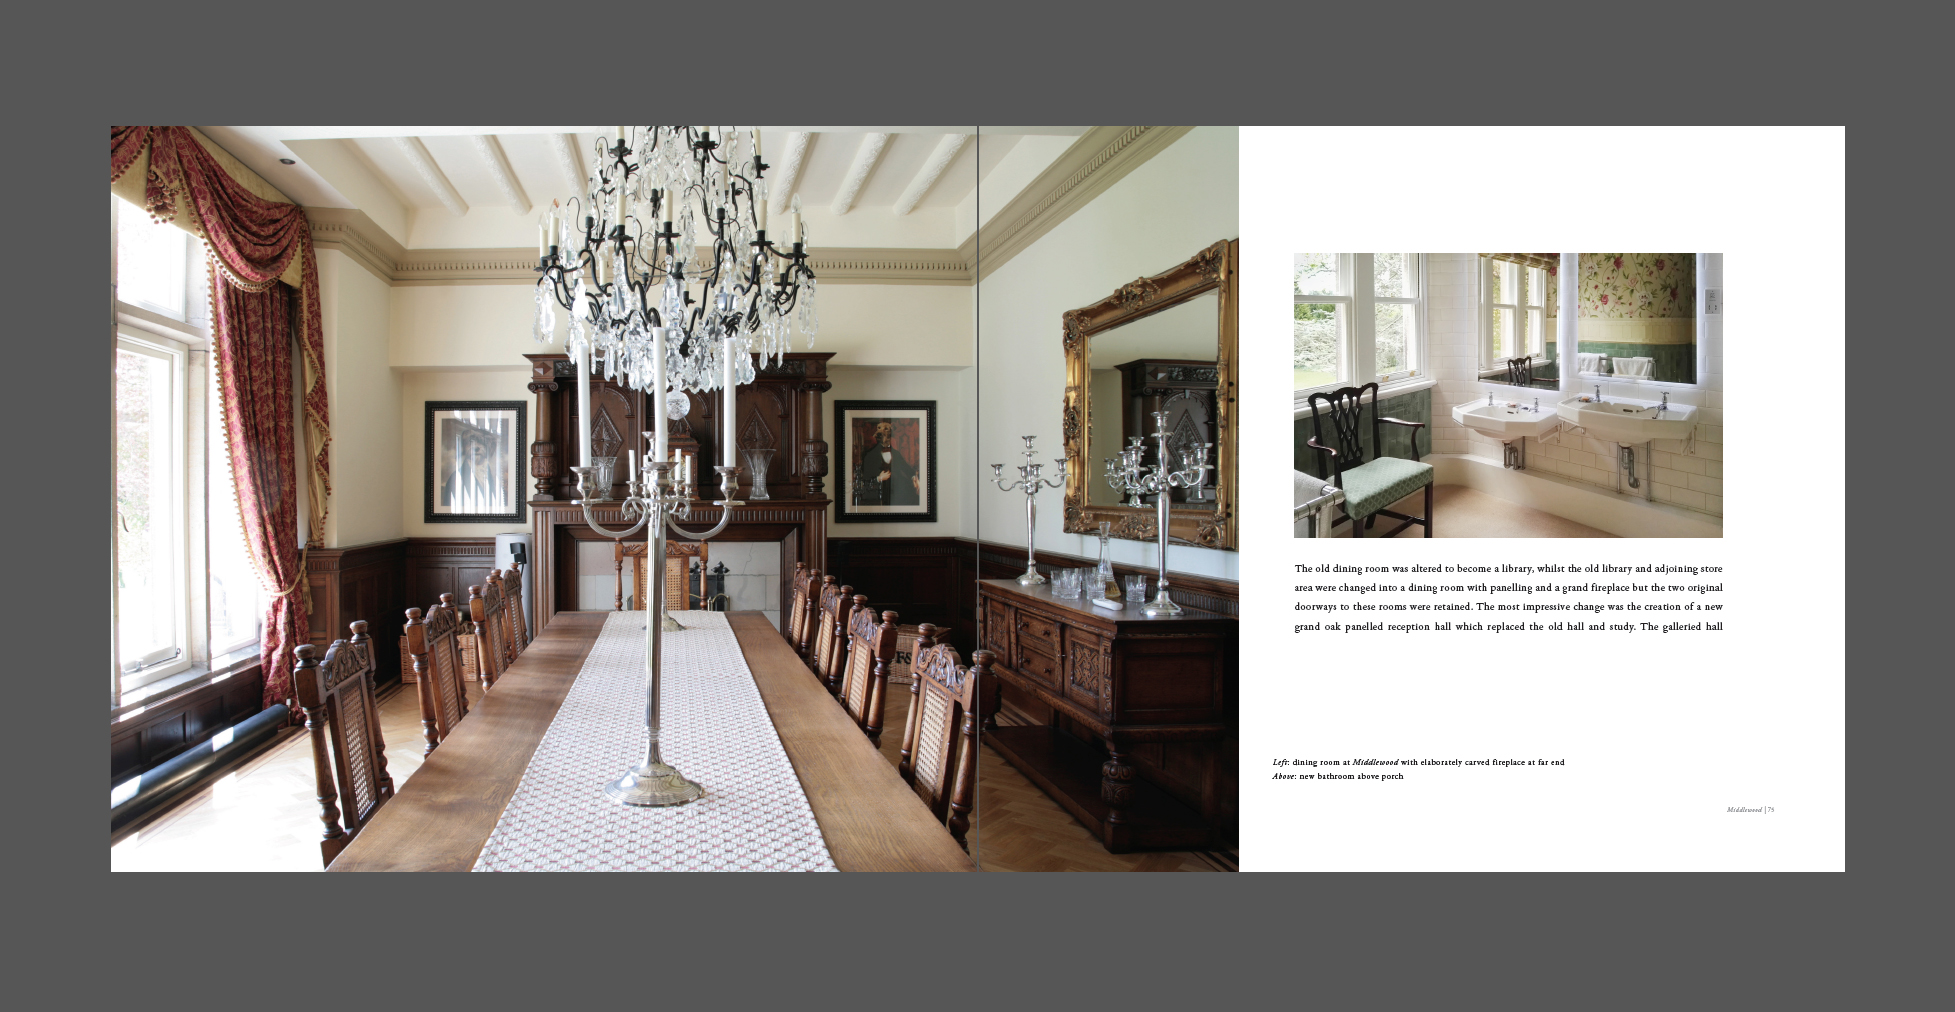 BENCHMARK_HOUSE_HISTORIES_Carol_Fulton_Middlewood_spread_74_75.jpg